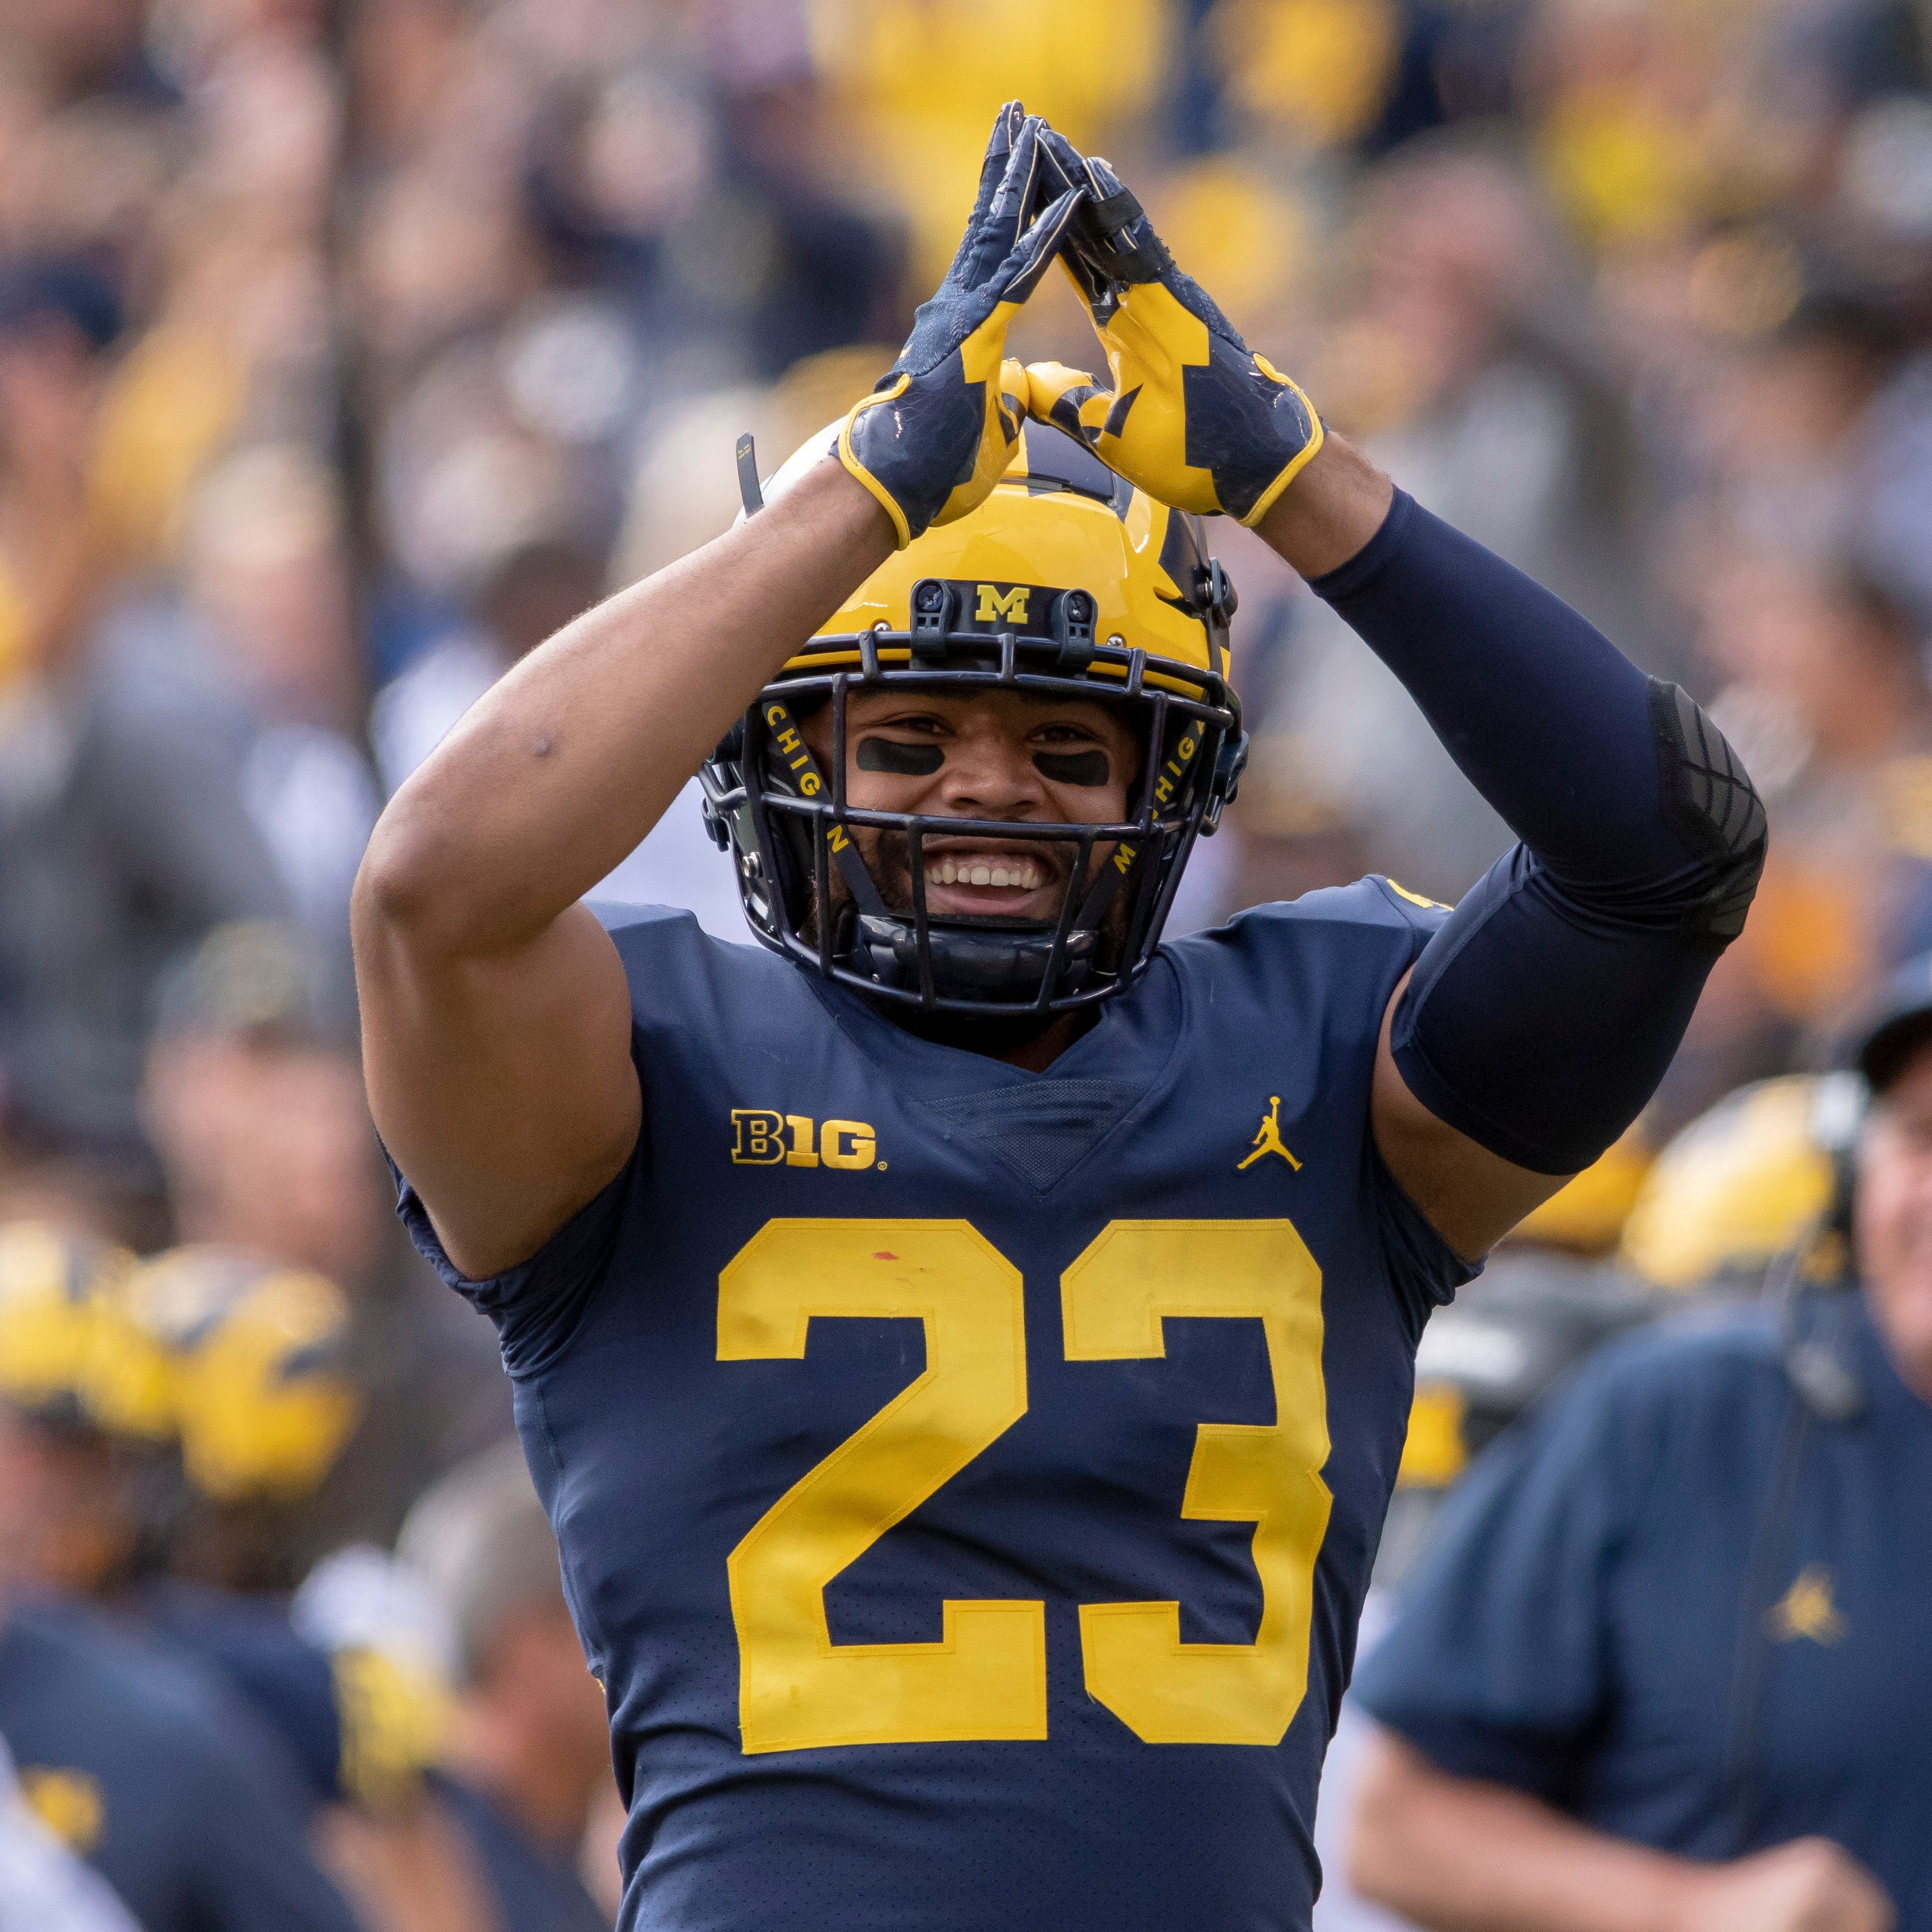 Captains inspire Wolverines with Spartans classic